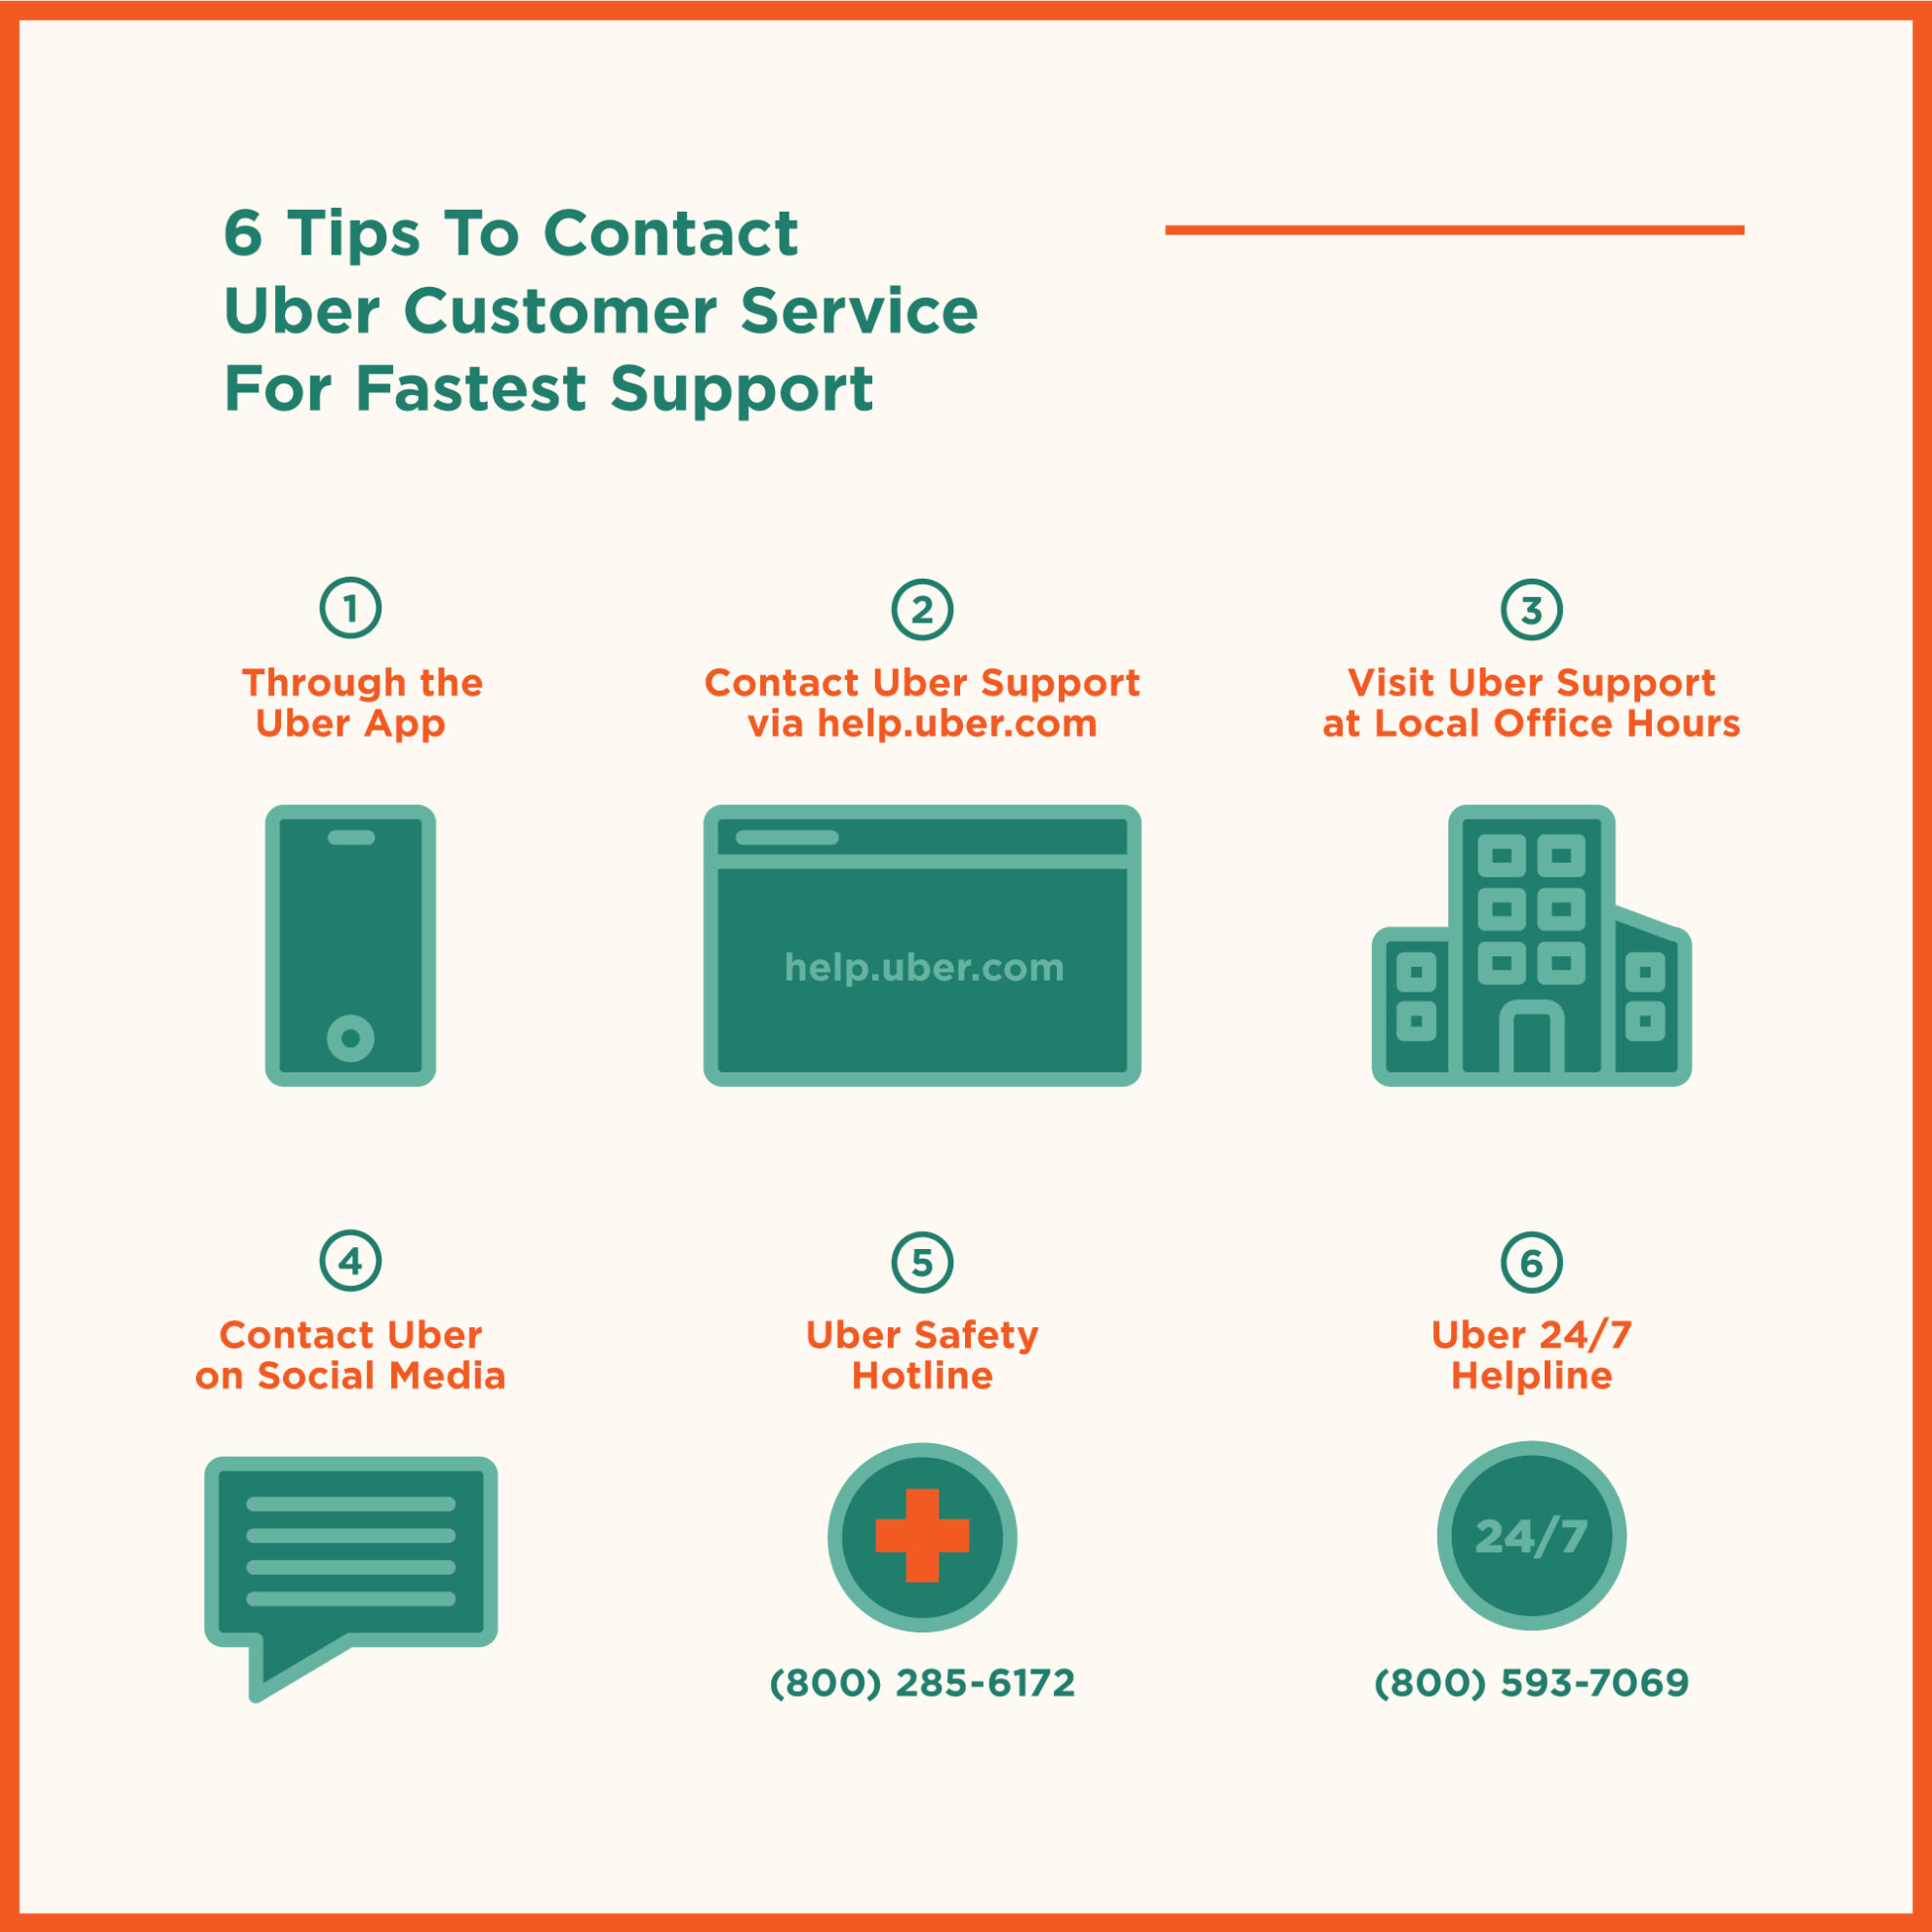 image of 6 ways to contact uber